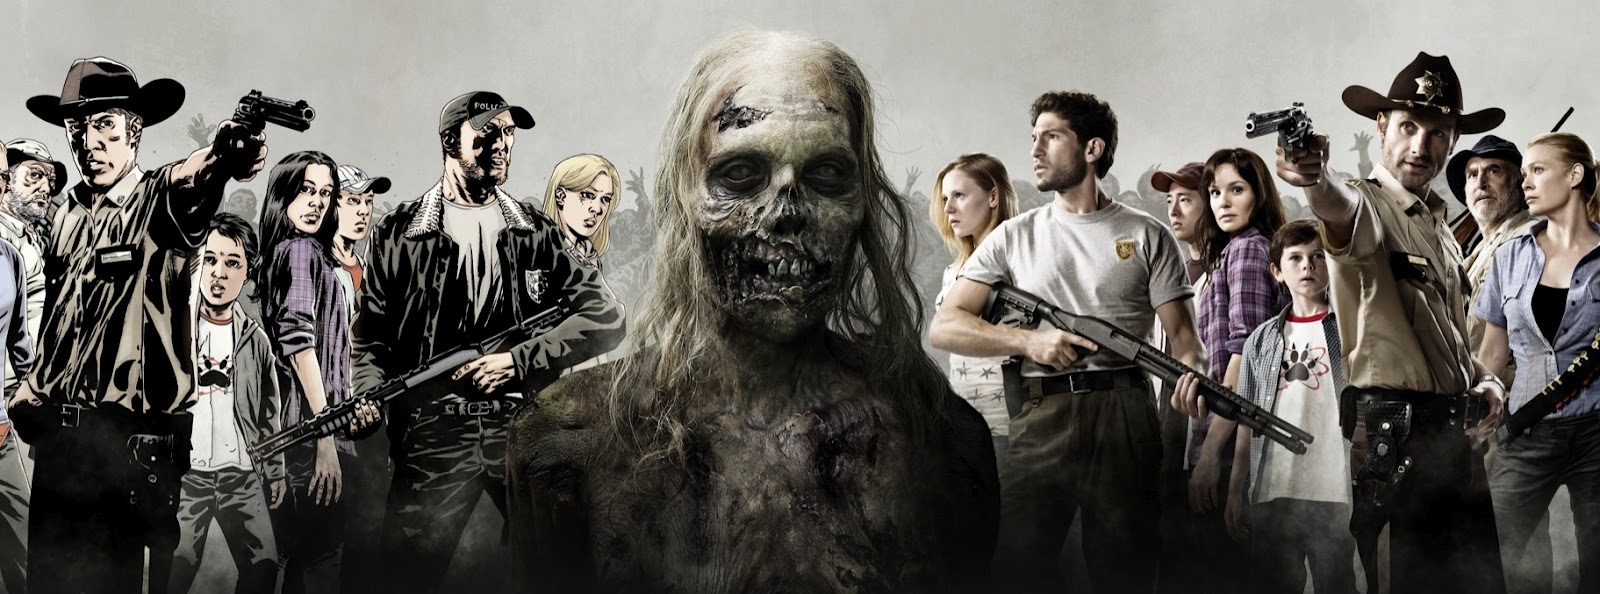 the-walking-dead-facebook-kapak